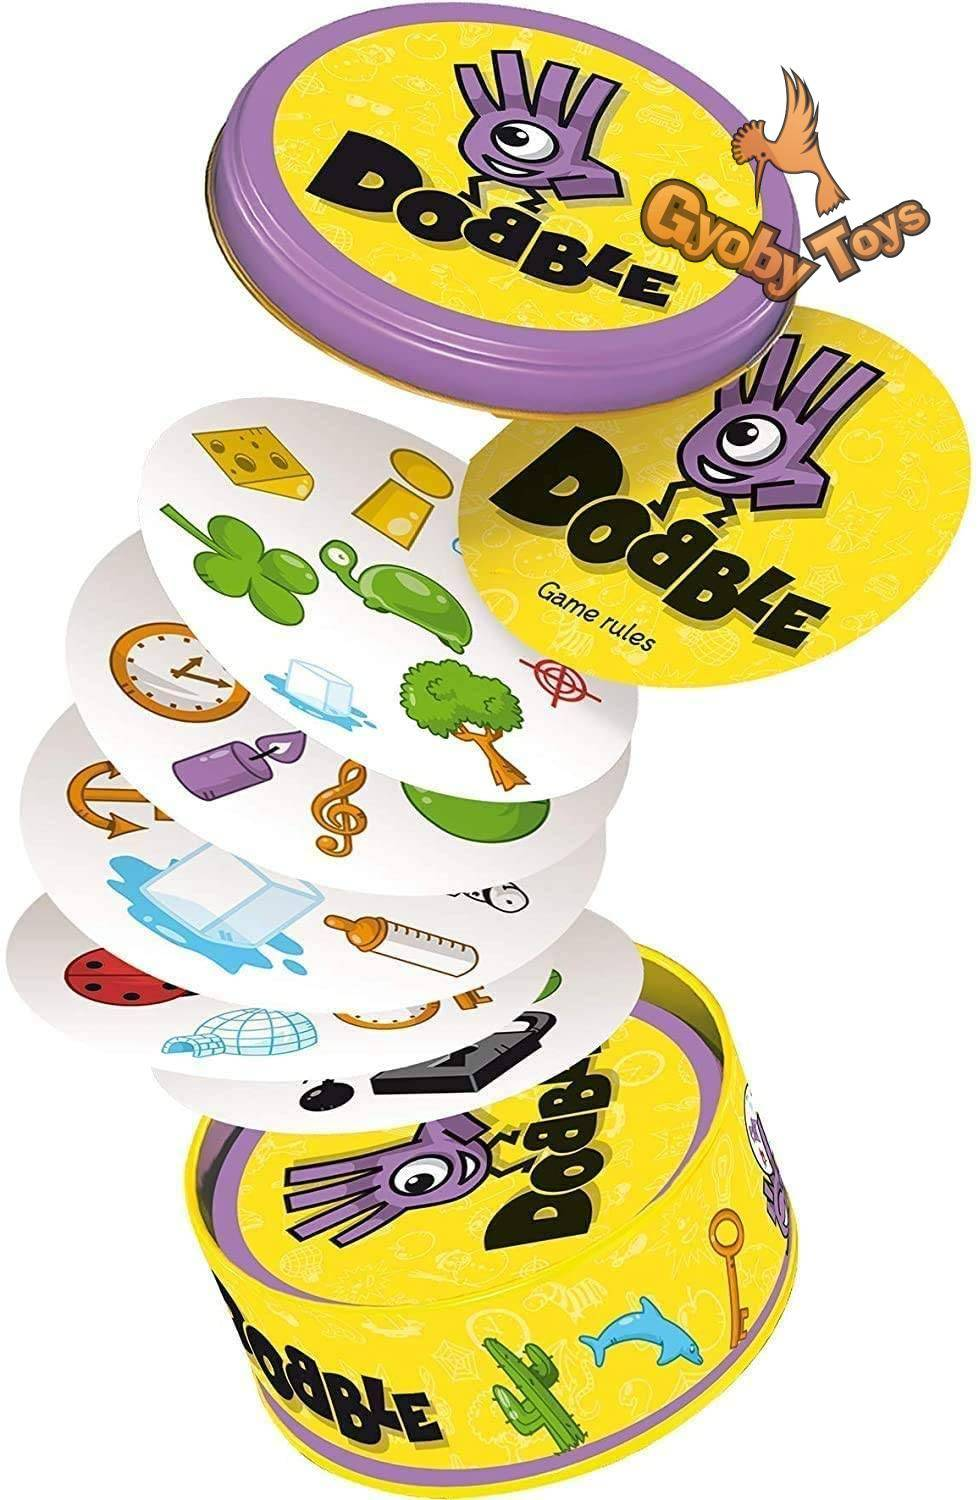 Funny High Quality Dobble Card Game GYOBY® TOYS